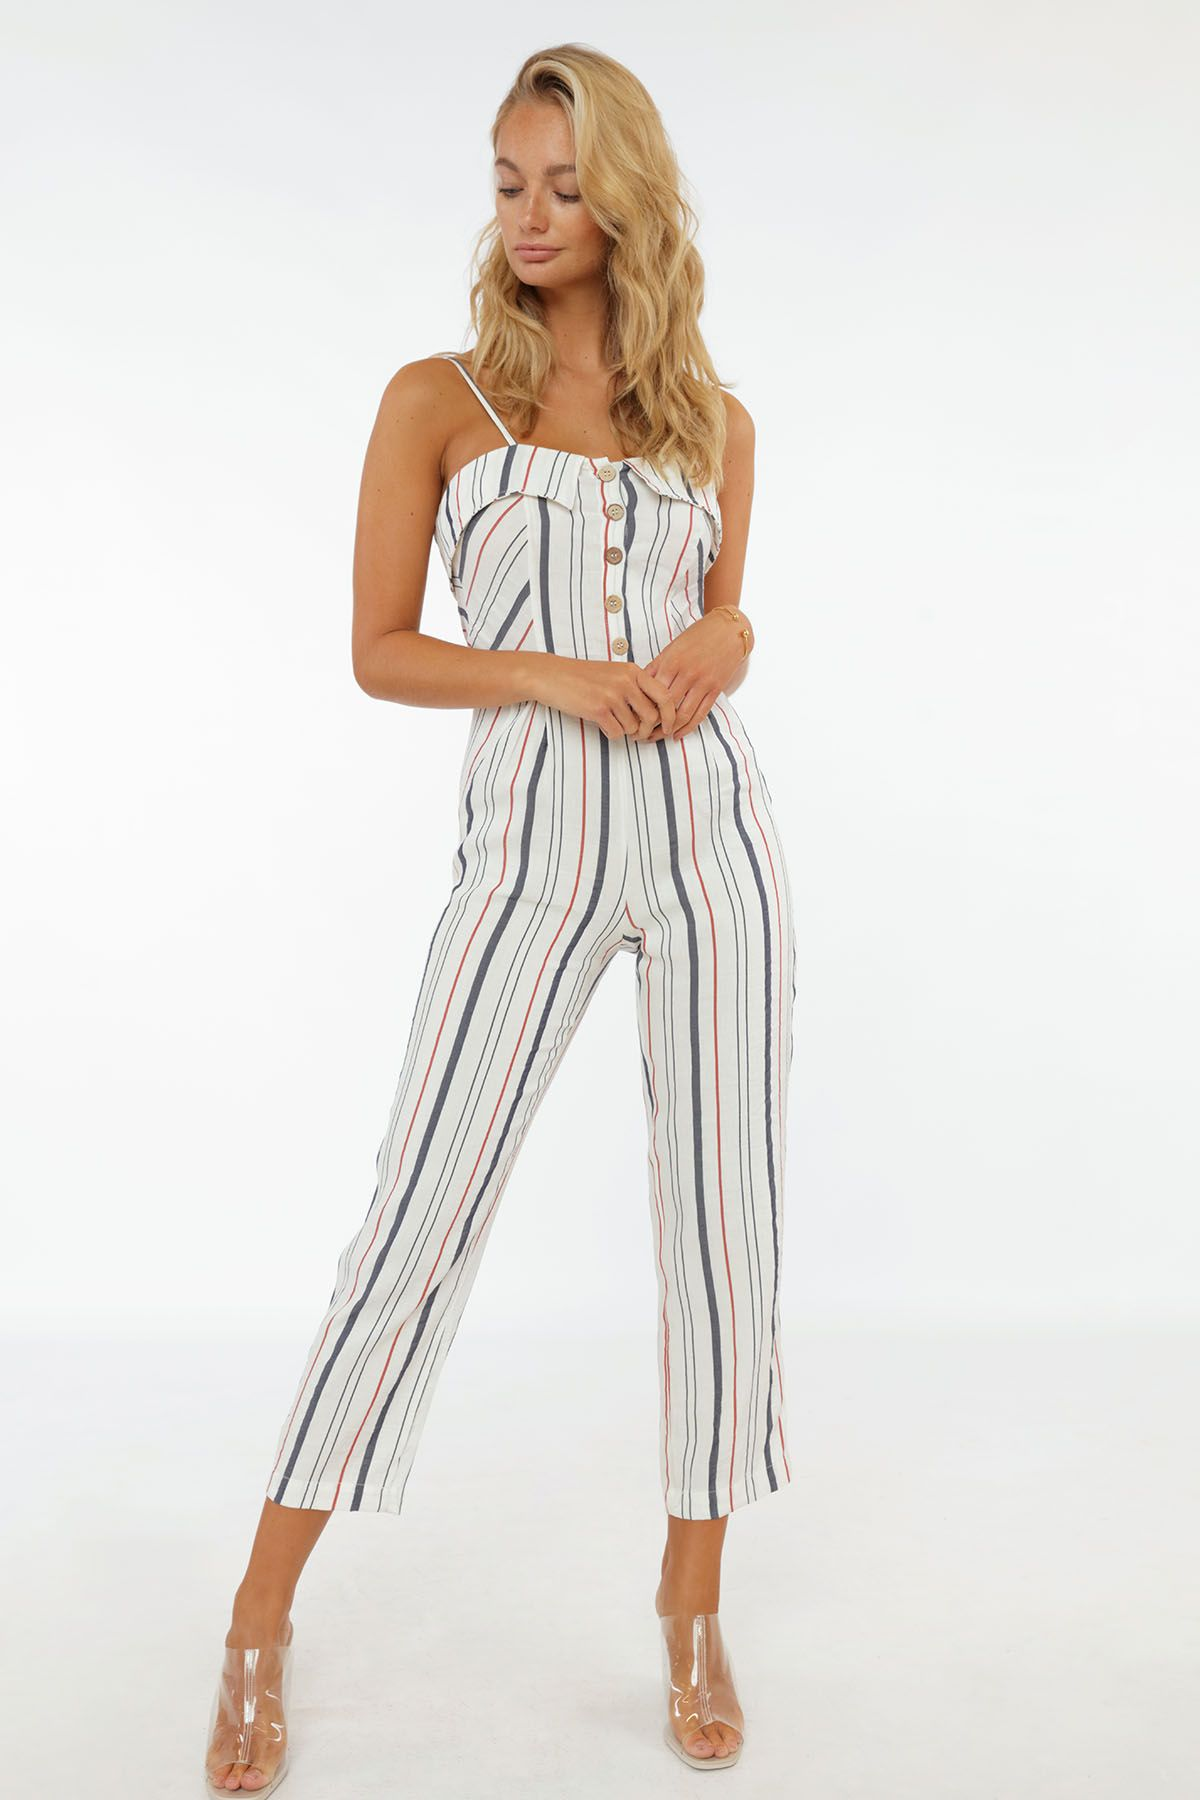 9962f1baa0 Sunrise To Sunset Jumpsuit CollectiveStyles.com ♥ Fashion | Women apparel |  Women's Clothes